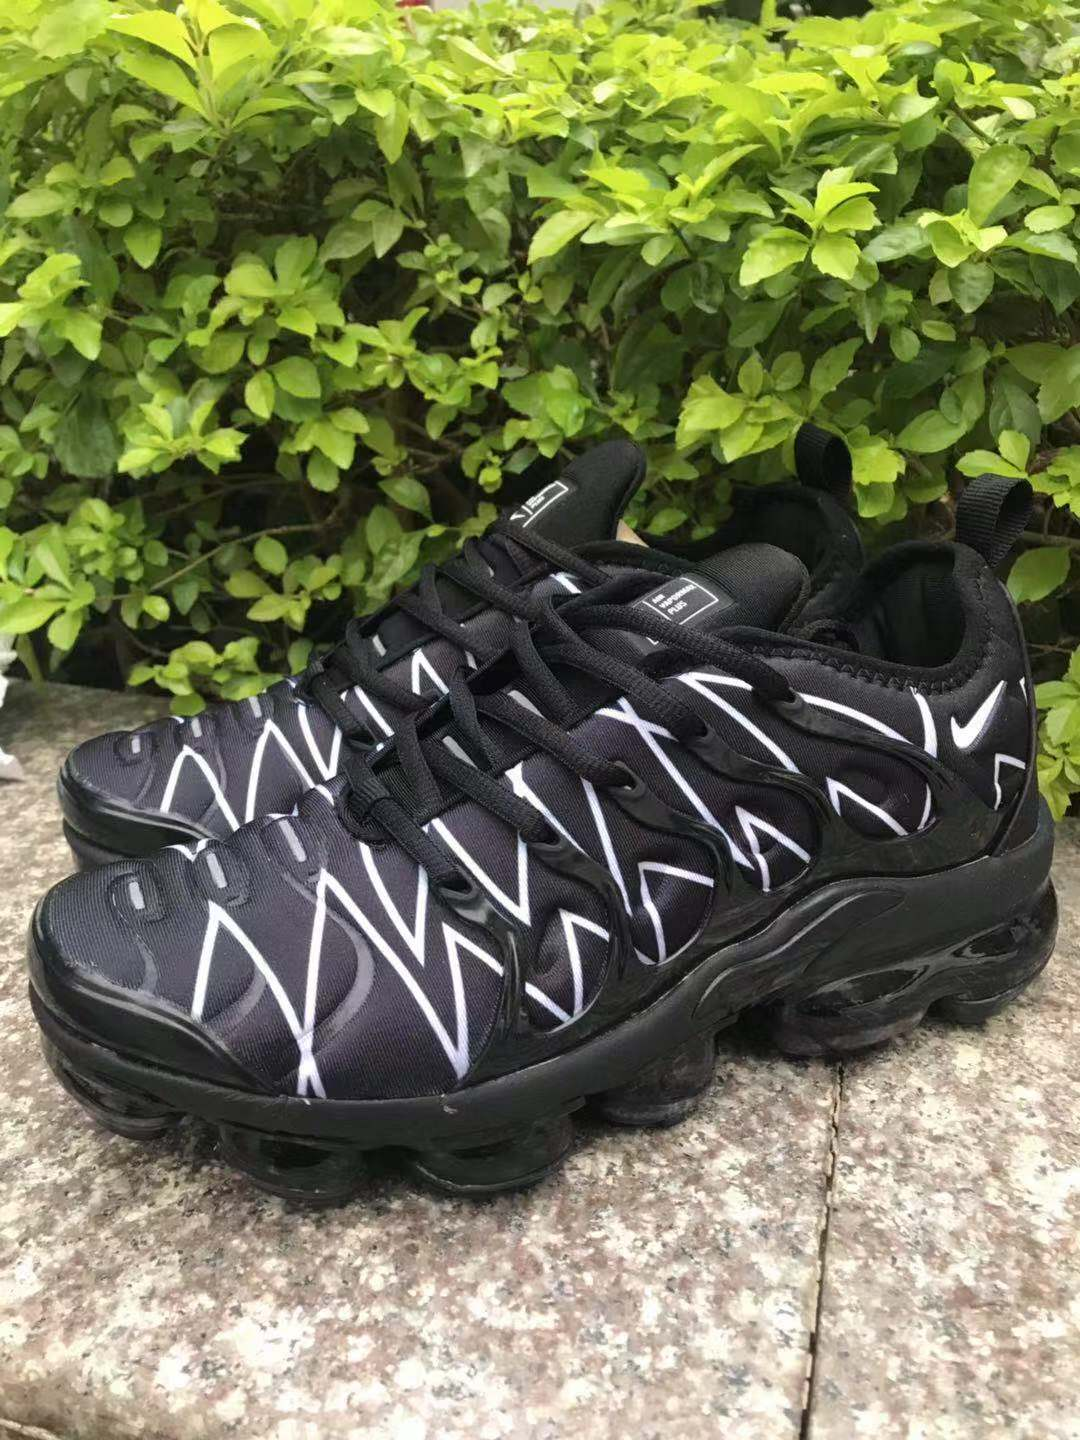 Nike Air Vapormax Plus 2018 TN Black White Line Lover Shoes